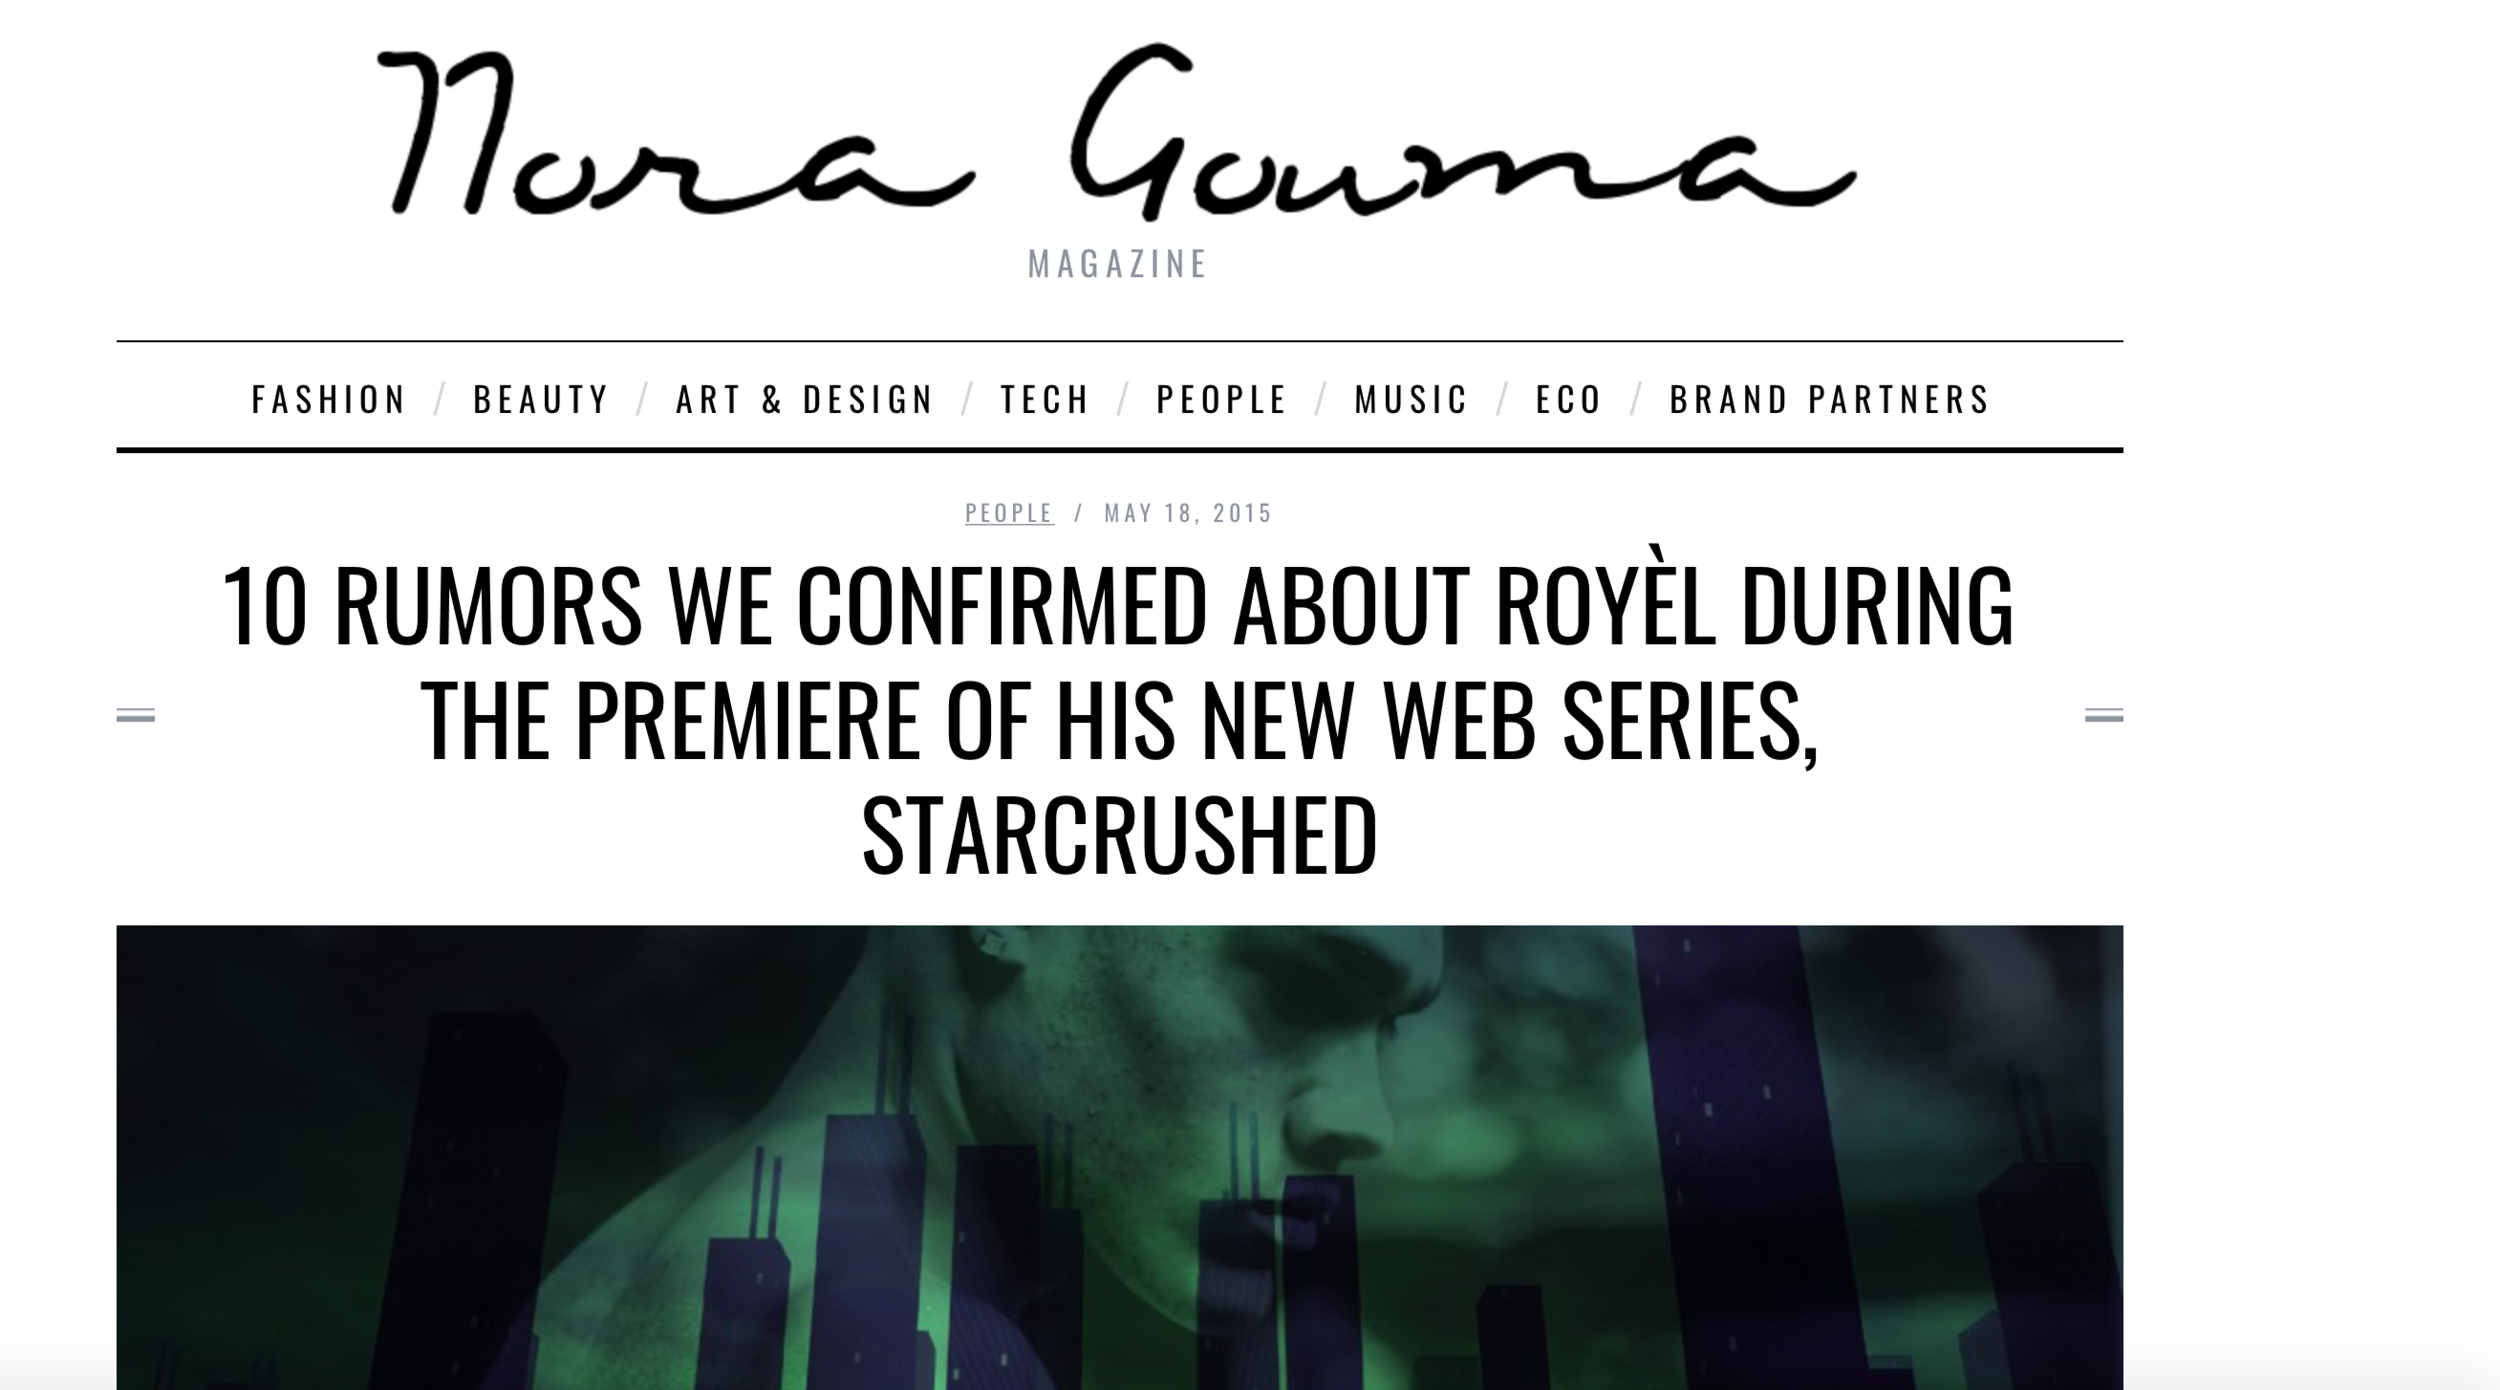 10 RUMORS WE CONFIRMED ABOUT ROYÈL DURING THE PREMIERE OF HIS NEW WEB SERIES, STARCRUSHED - We were given the opportunity to stream the first episode of Mitchell Royèl's sci-fi web series before itpremieres on Monday. We can't reveal much, but we did put together a list of rumors we were able toconfirm about the artist during the premiere of the show.